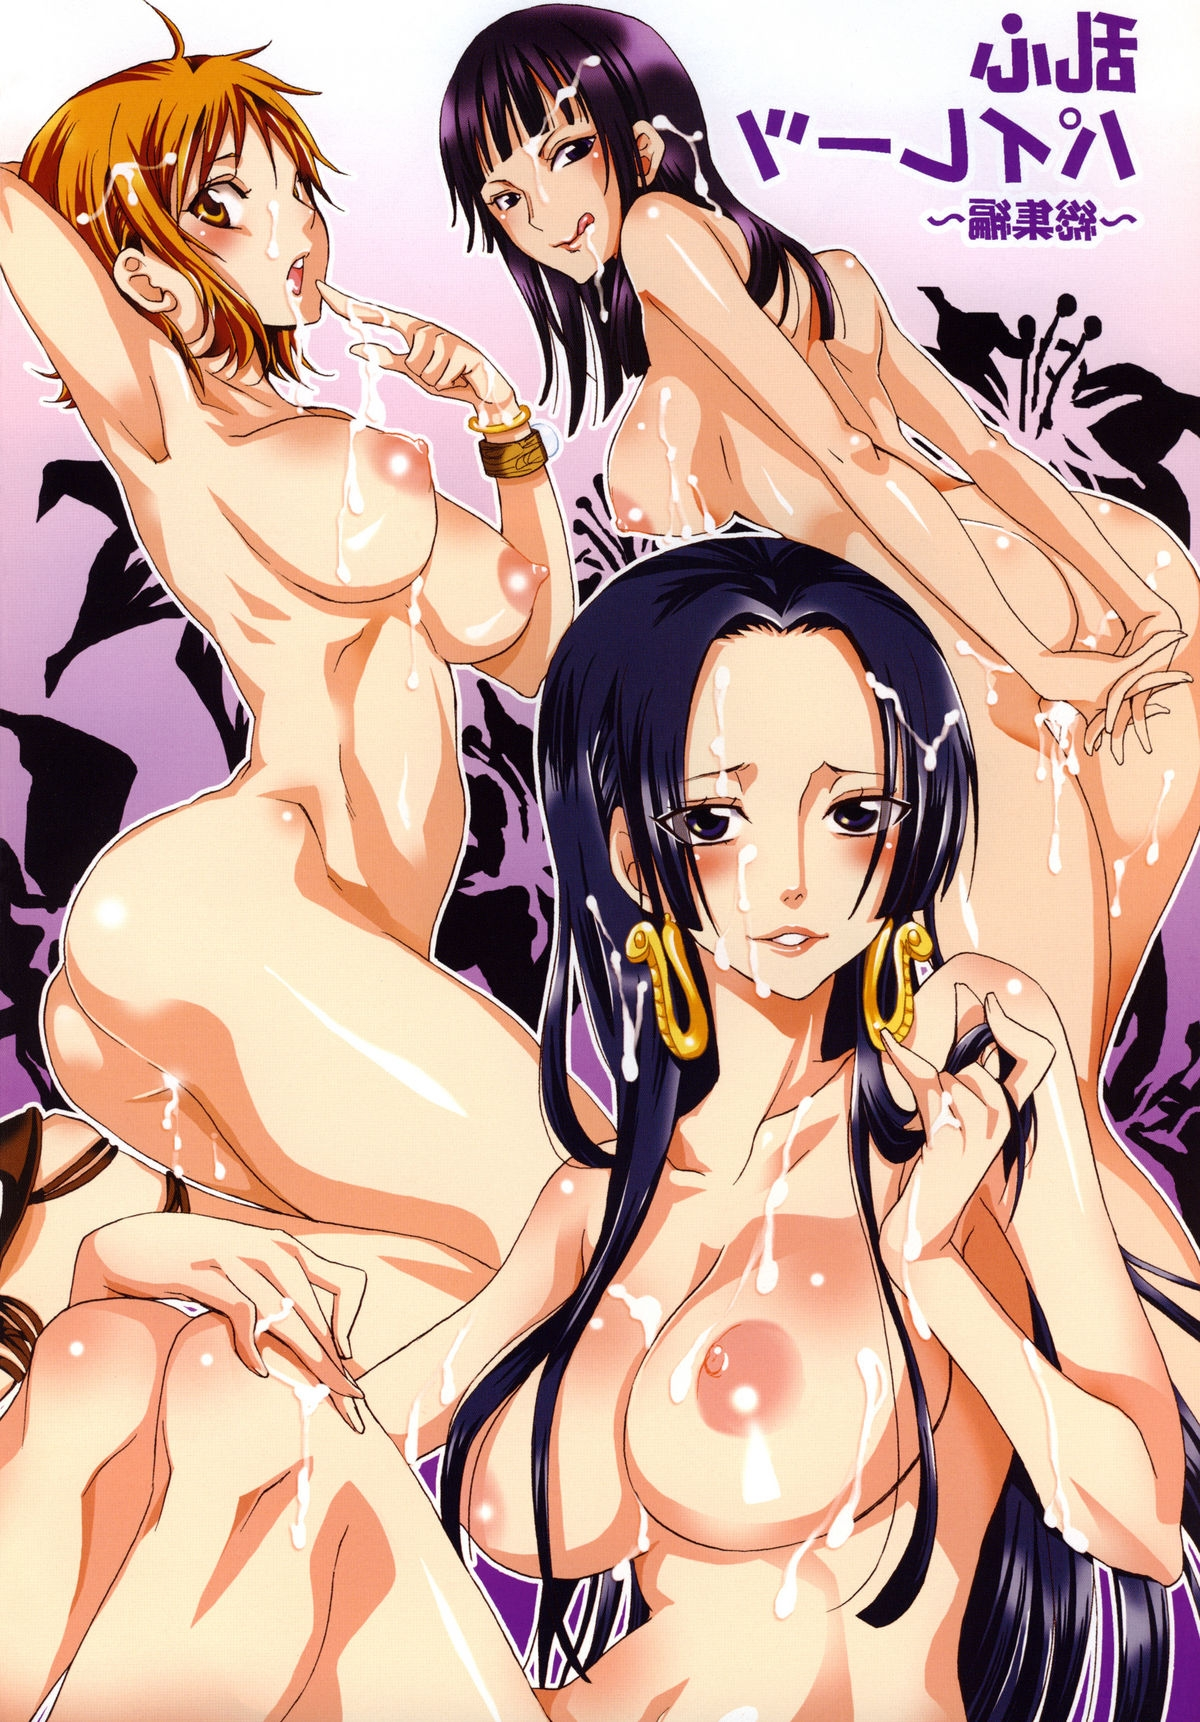 Toon sex pic ##000130669103 3girls ass black hair blue hair boa hancock breasts cum cum on body cum on breasts cum on upper body earrings facial highres ioboa hancock jewelry long hair multiple girls nami nico robin nipples nude one piece orange hair pirate tongue